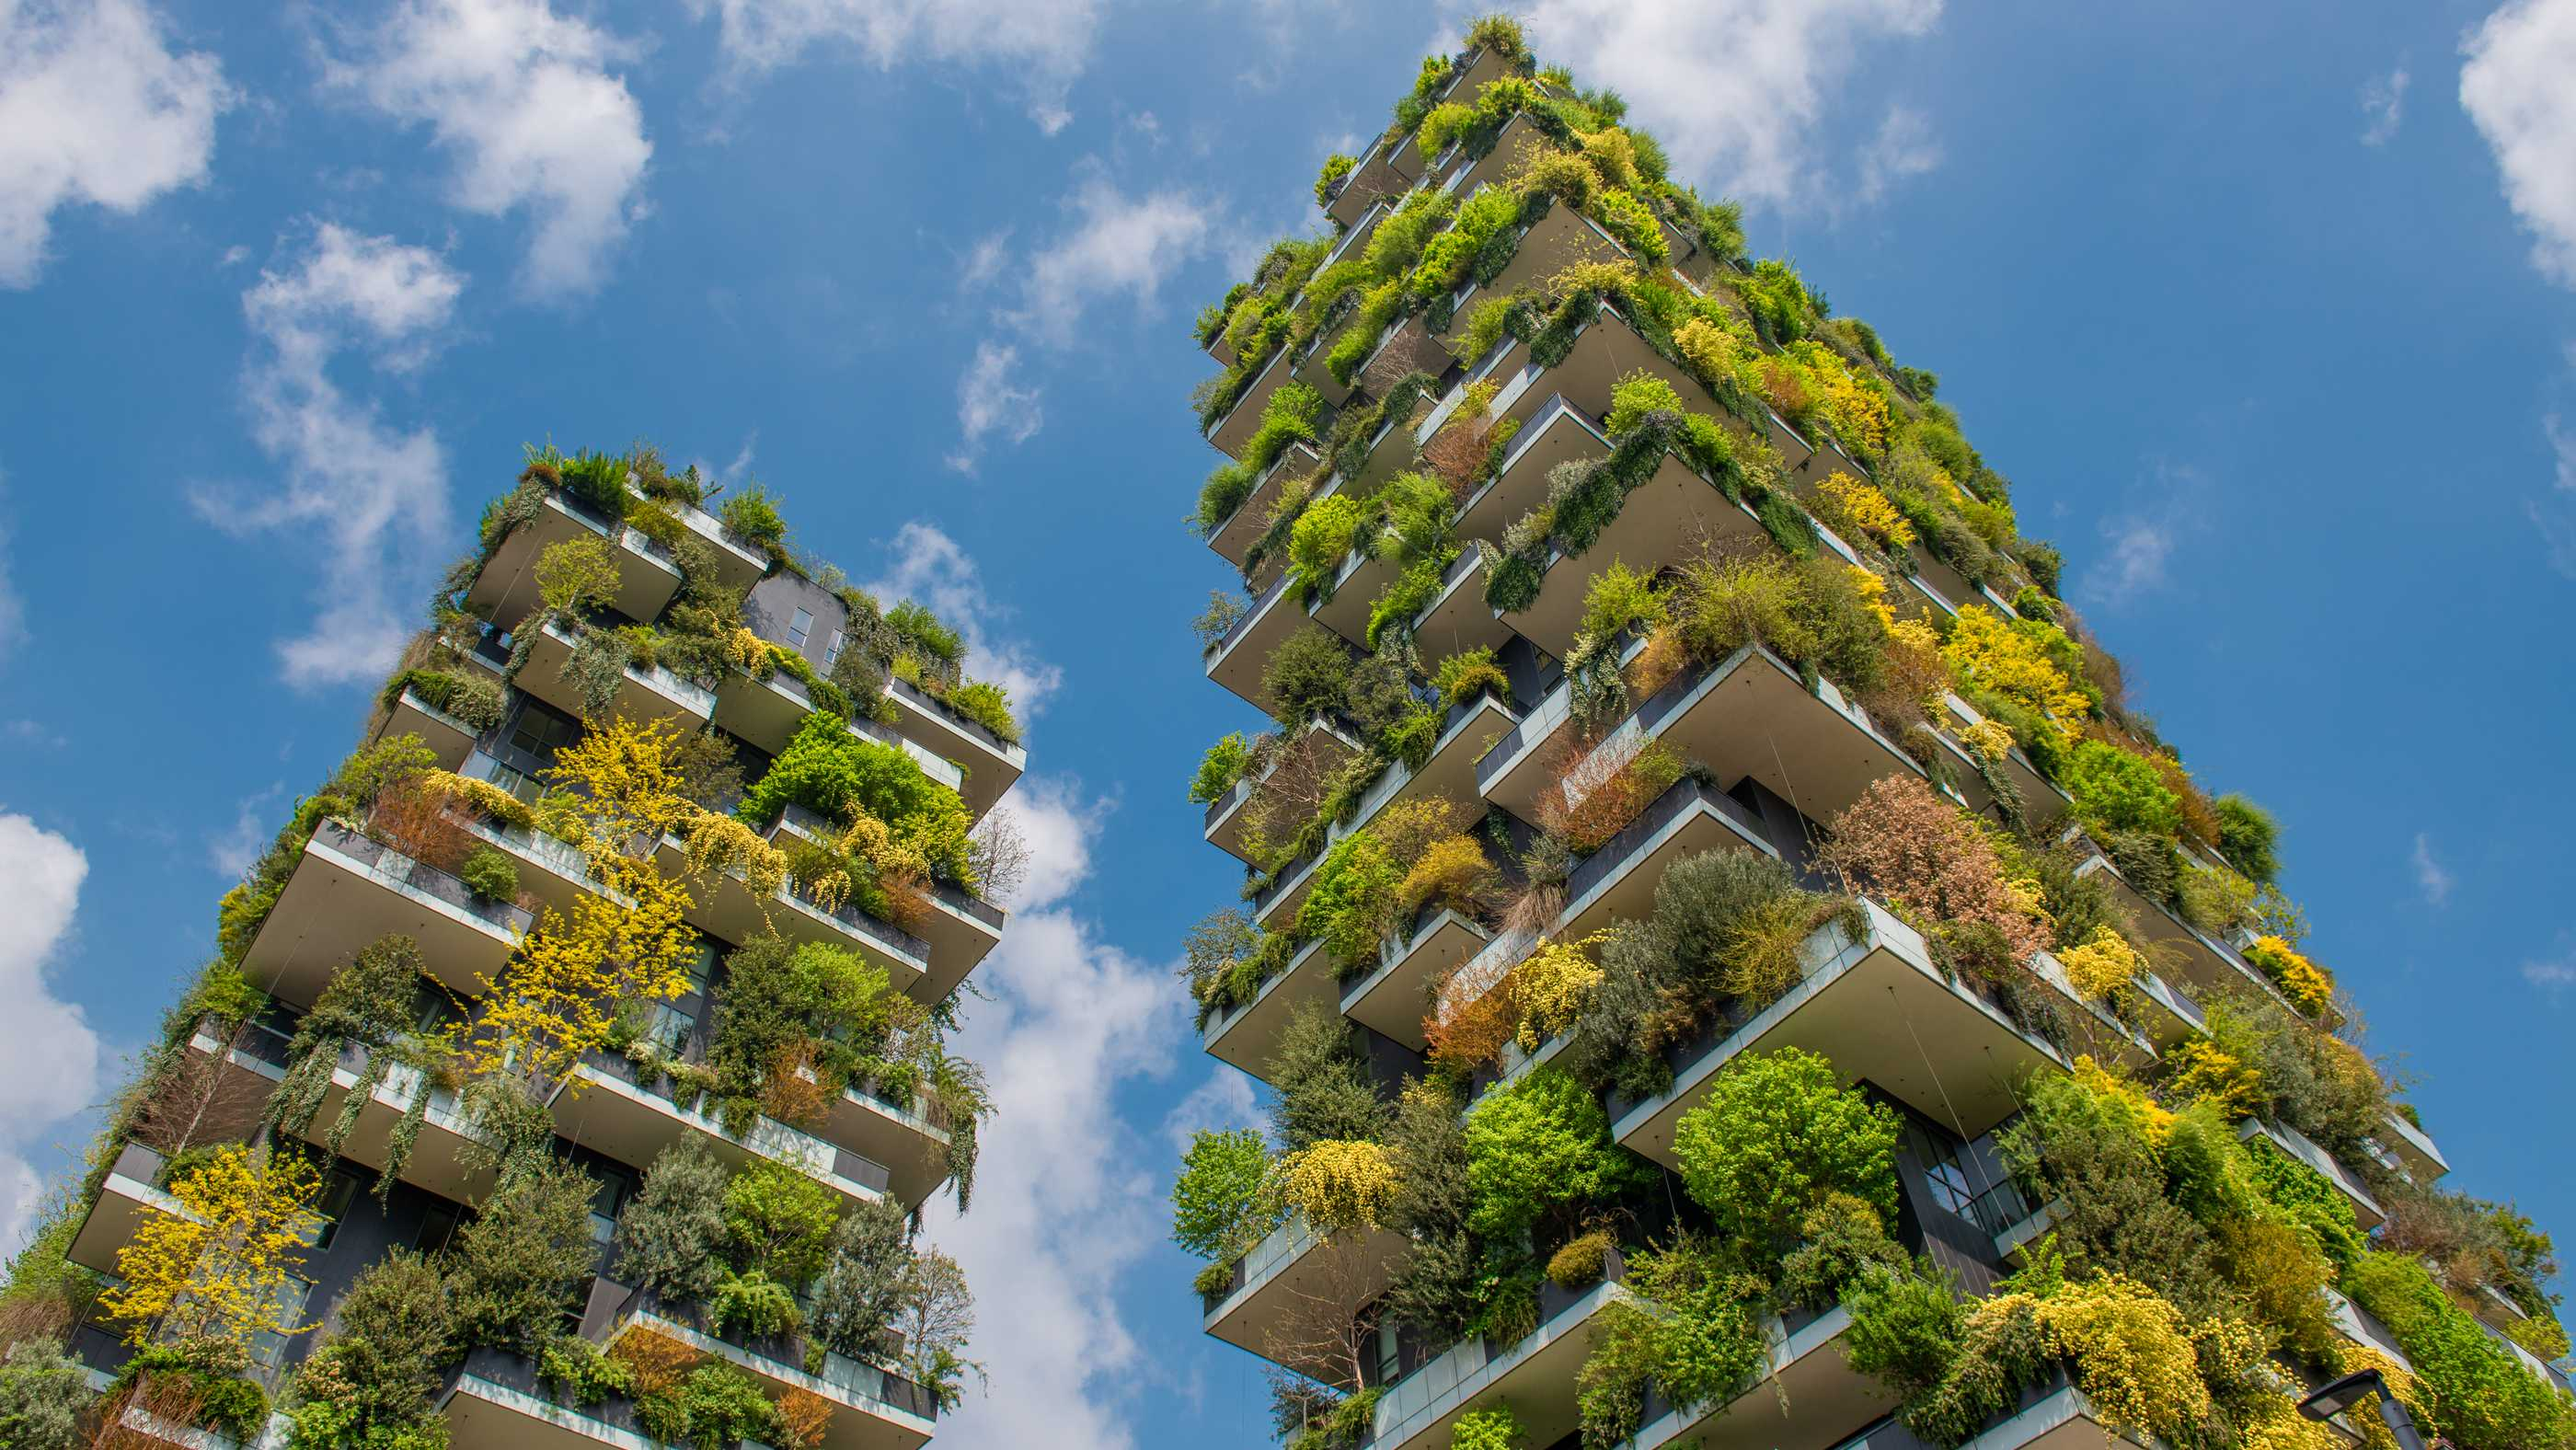 Bosco Verticale in Mailand